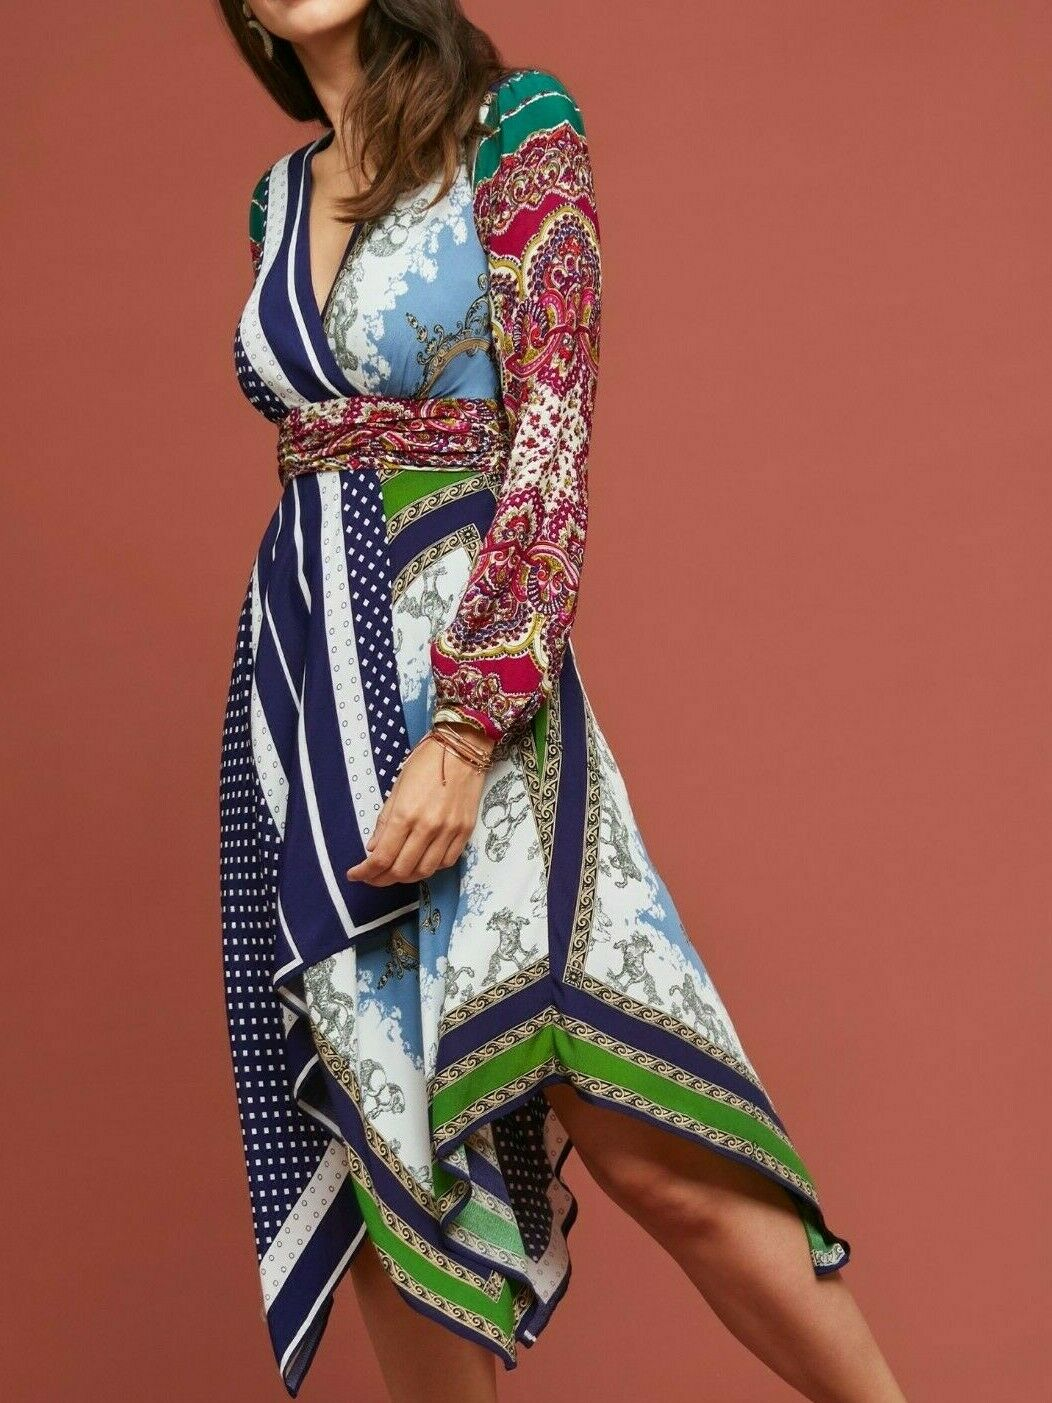 Anthropologie Istanbul Wrap Dress by Moulinette Moulinette Moulinette Soeurs  198 Sz 8 - NWT 1d81c5